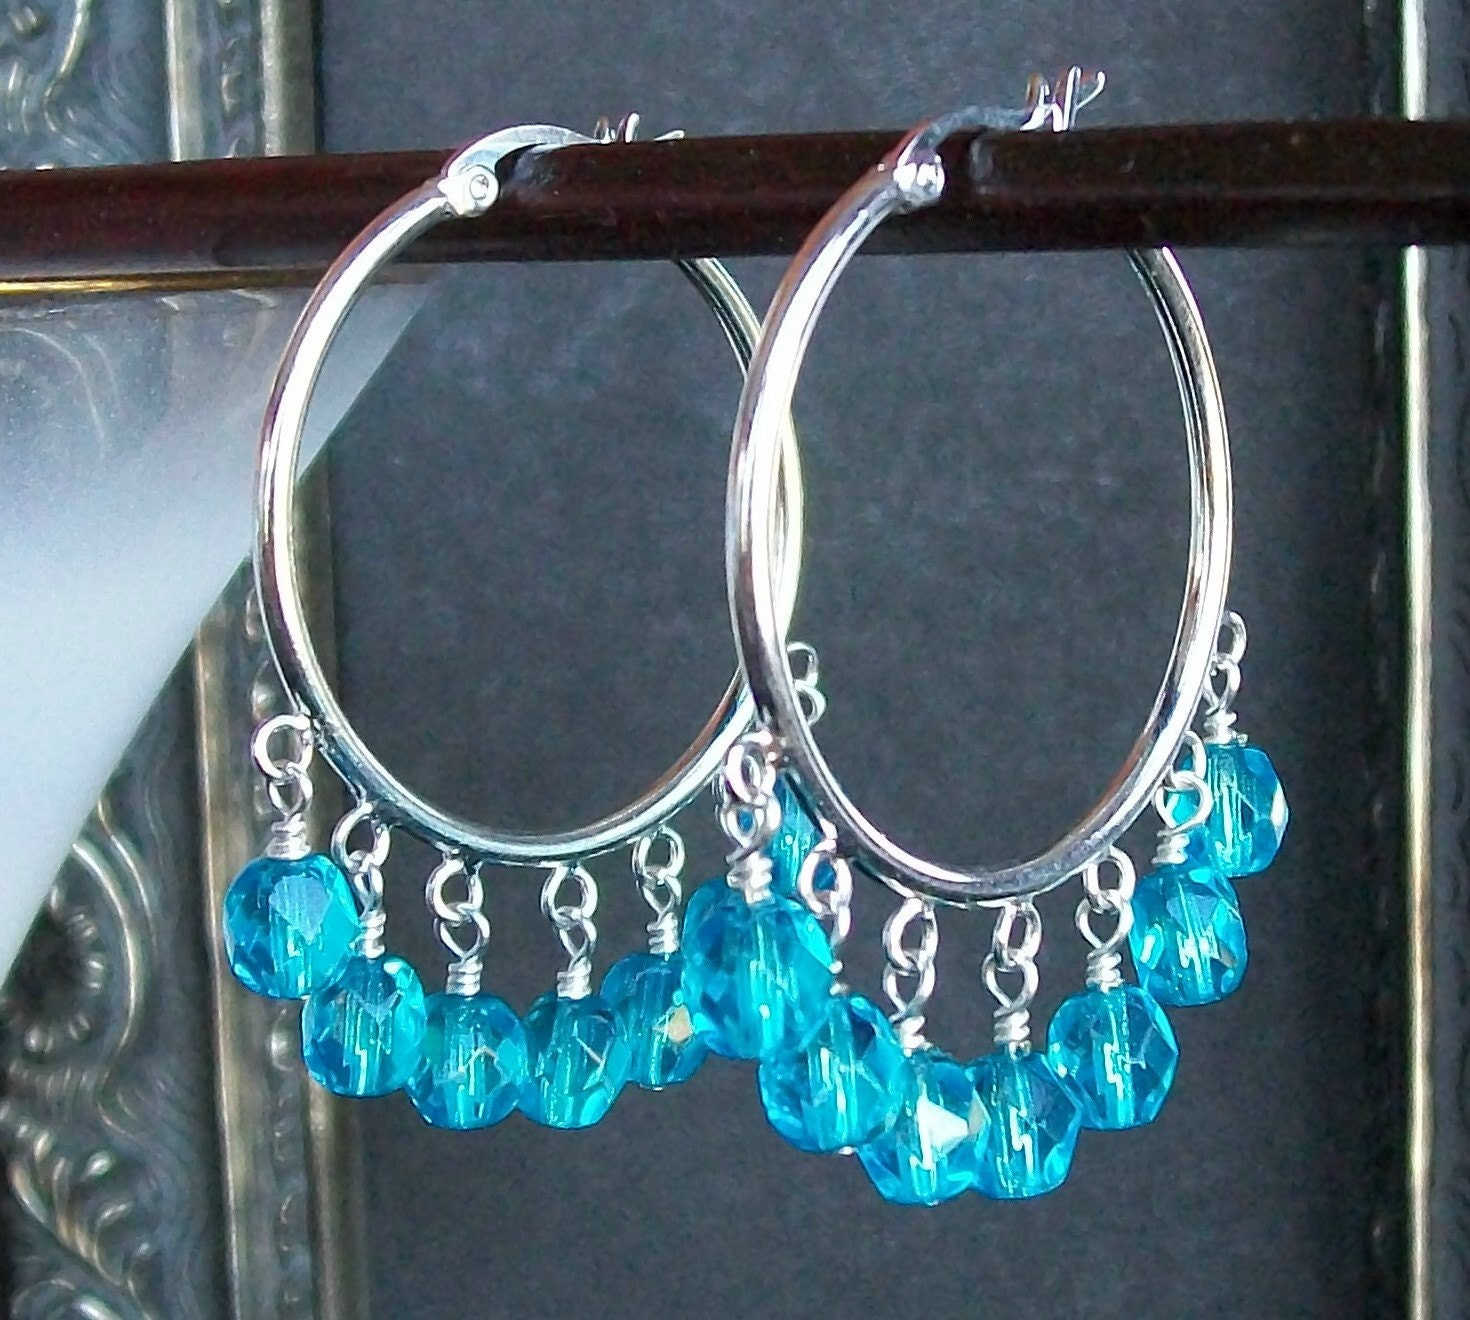 Turquoise Blue and Silver Cha Cha Hoop Earrings by shannonsroom from etsy.com